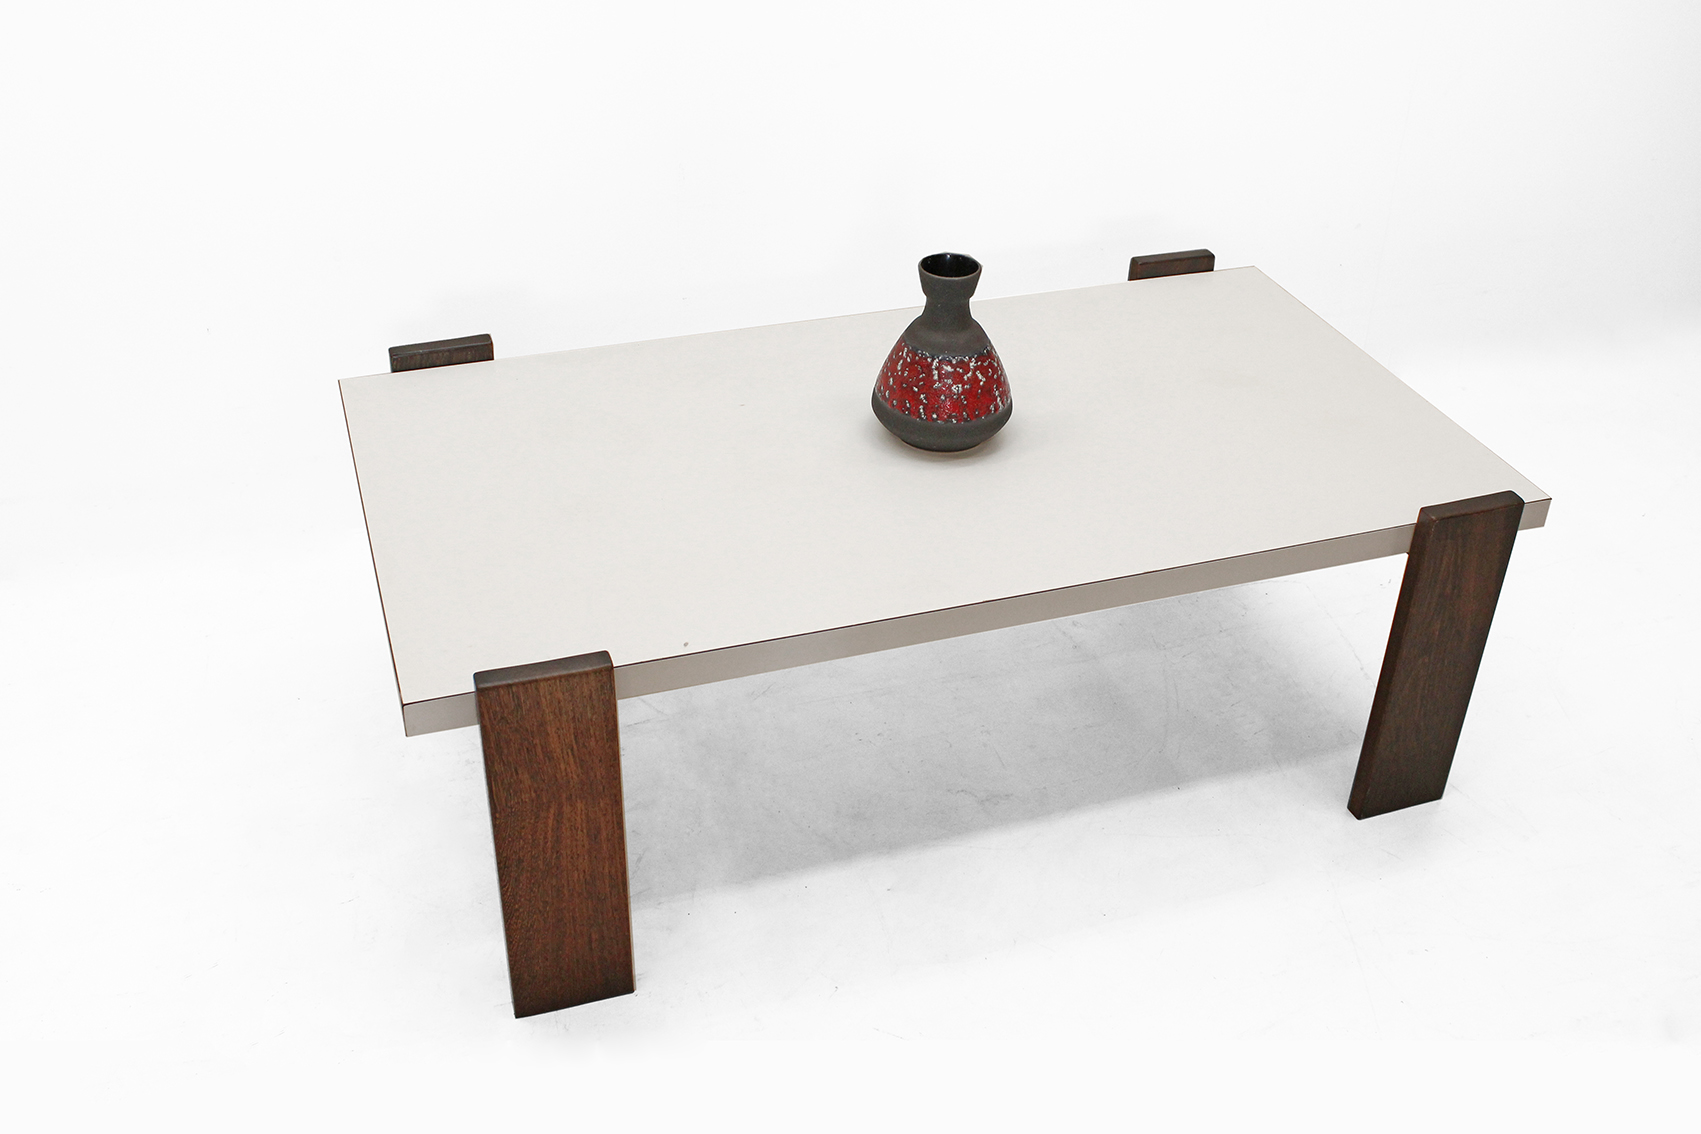 Seventies coffee-table made by van den berghe pauvers